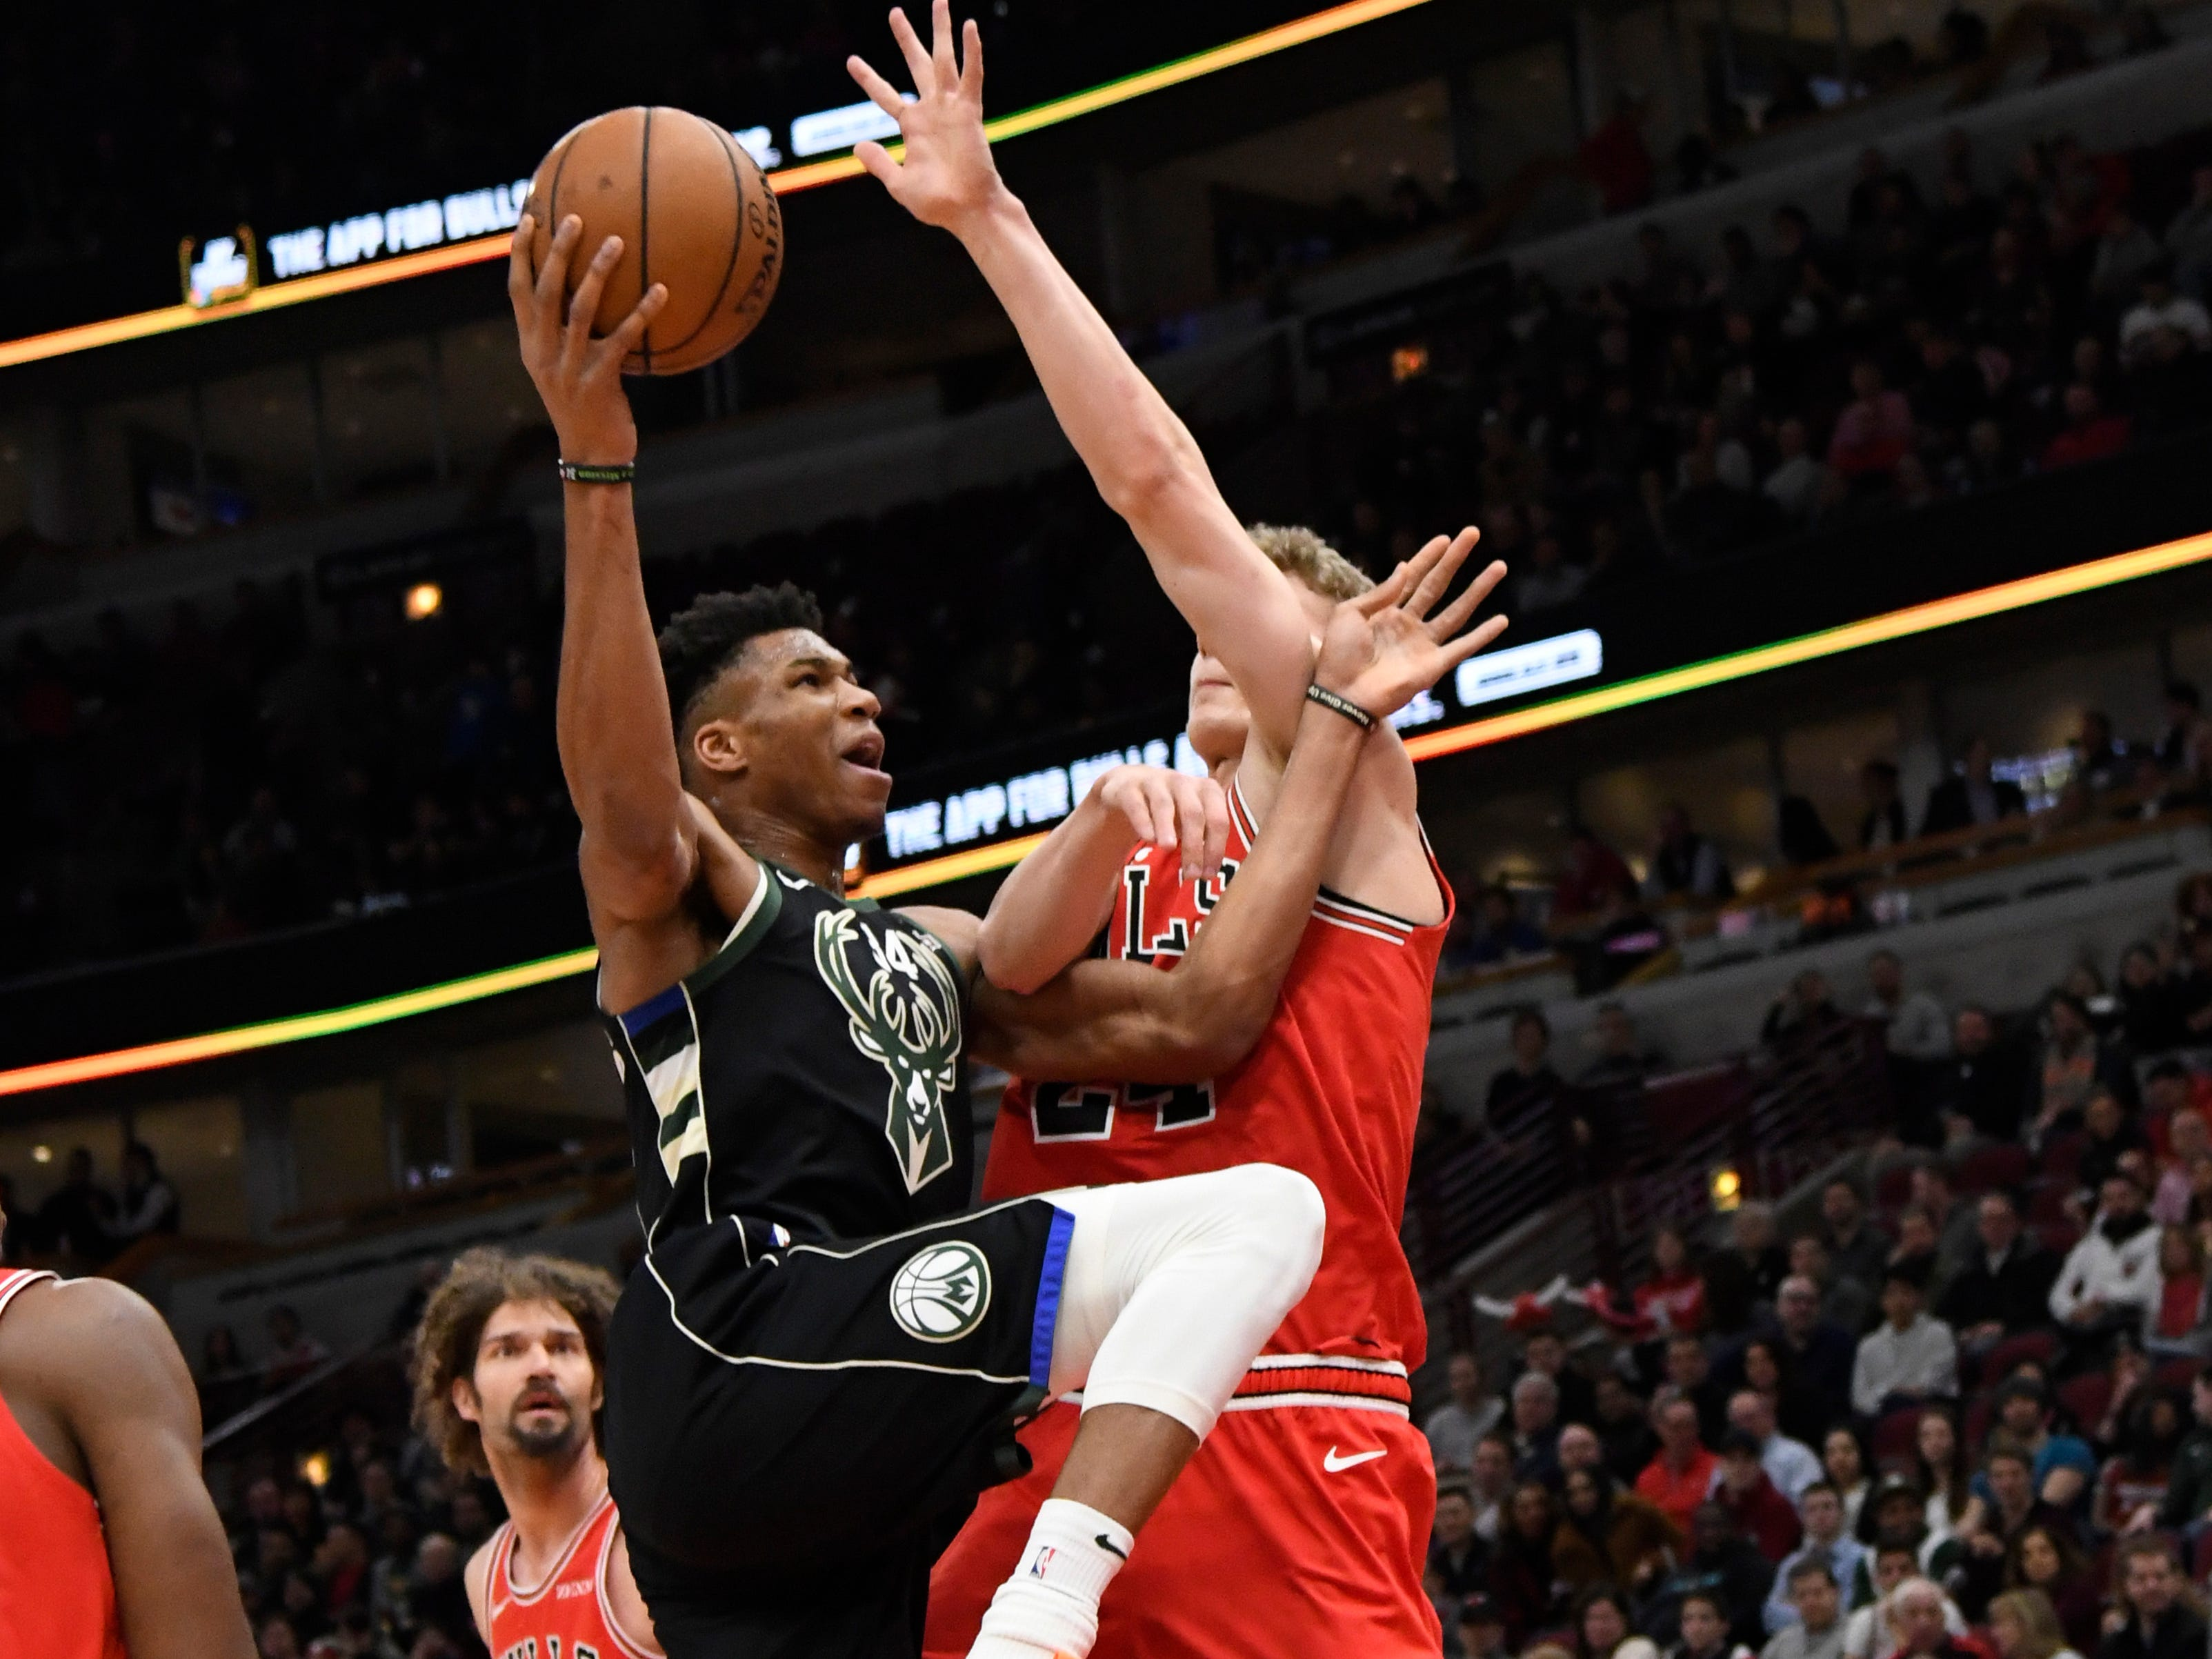 Bucks forward Giannis Antetokounmpo drives to the basket as Bulls forward Lauri Markkanen defends him during the first half Monday.